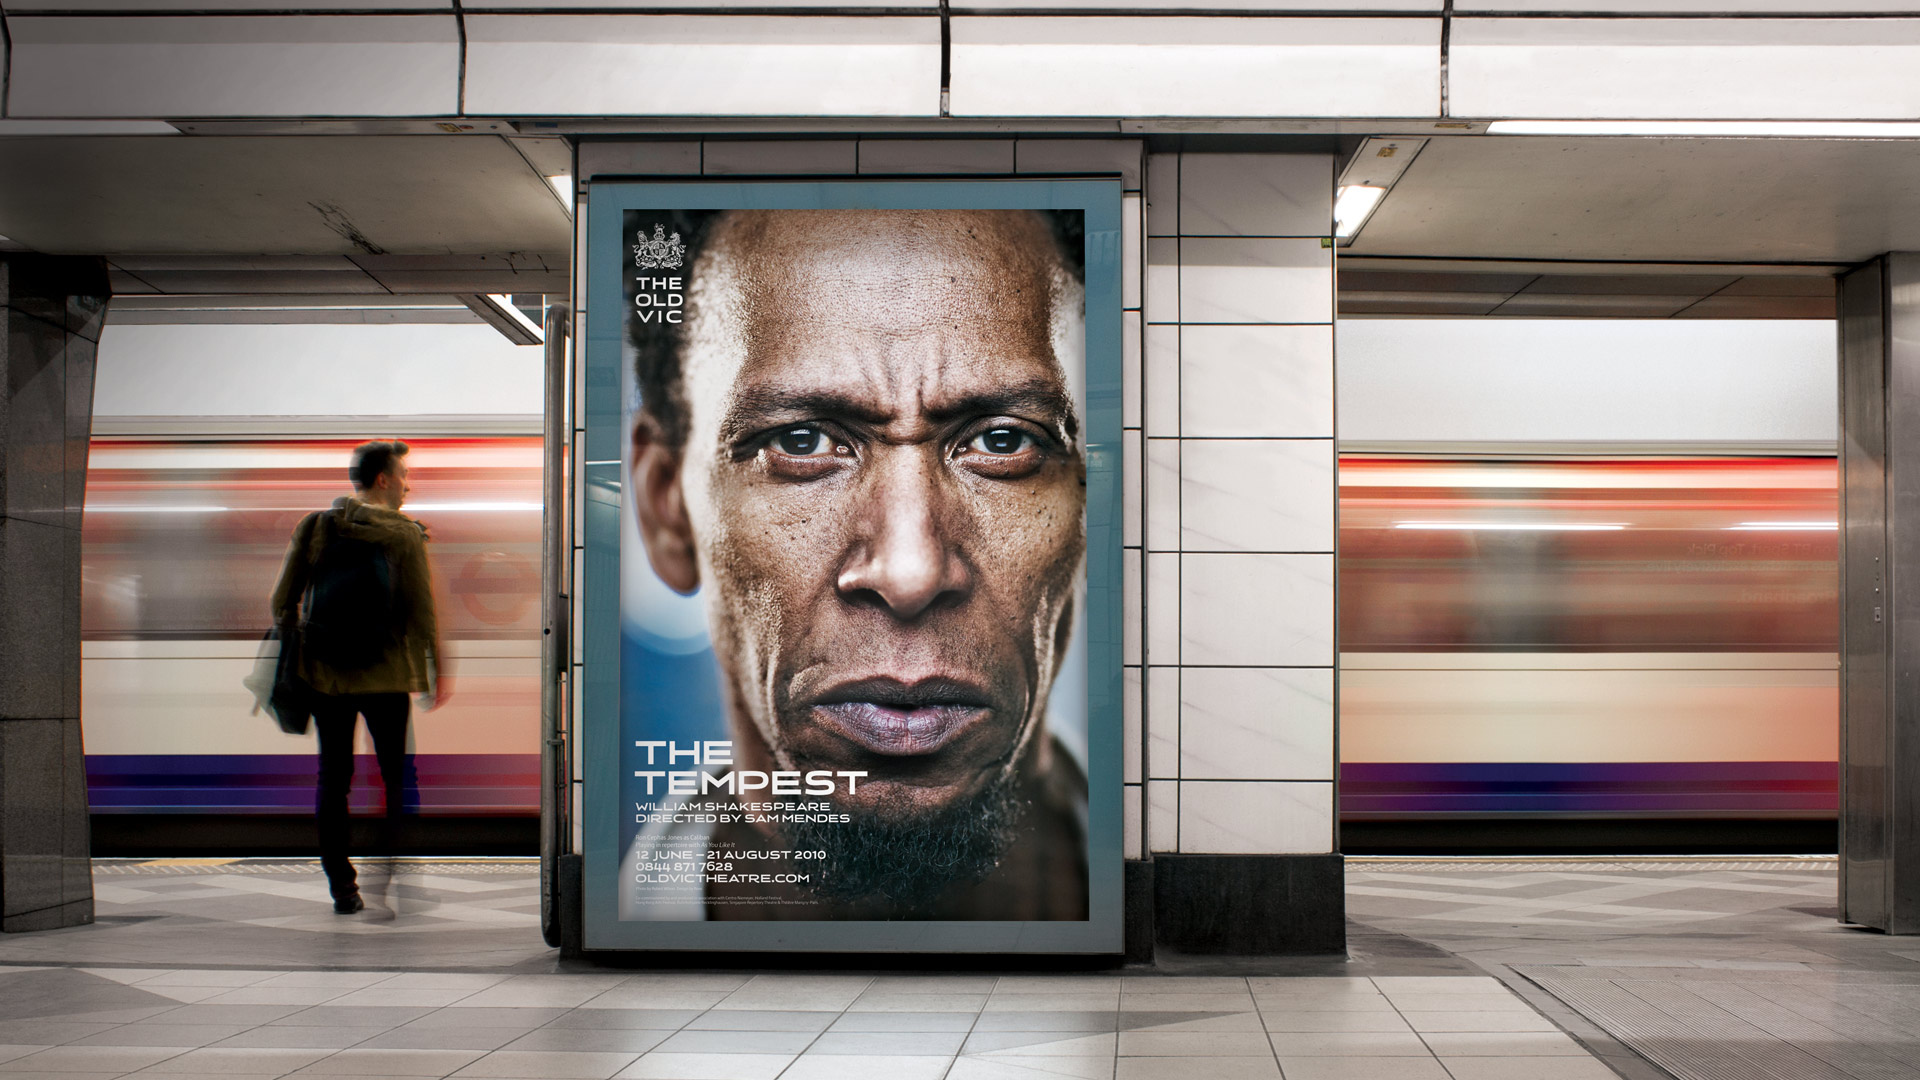 The Old Vic: brand campaigns